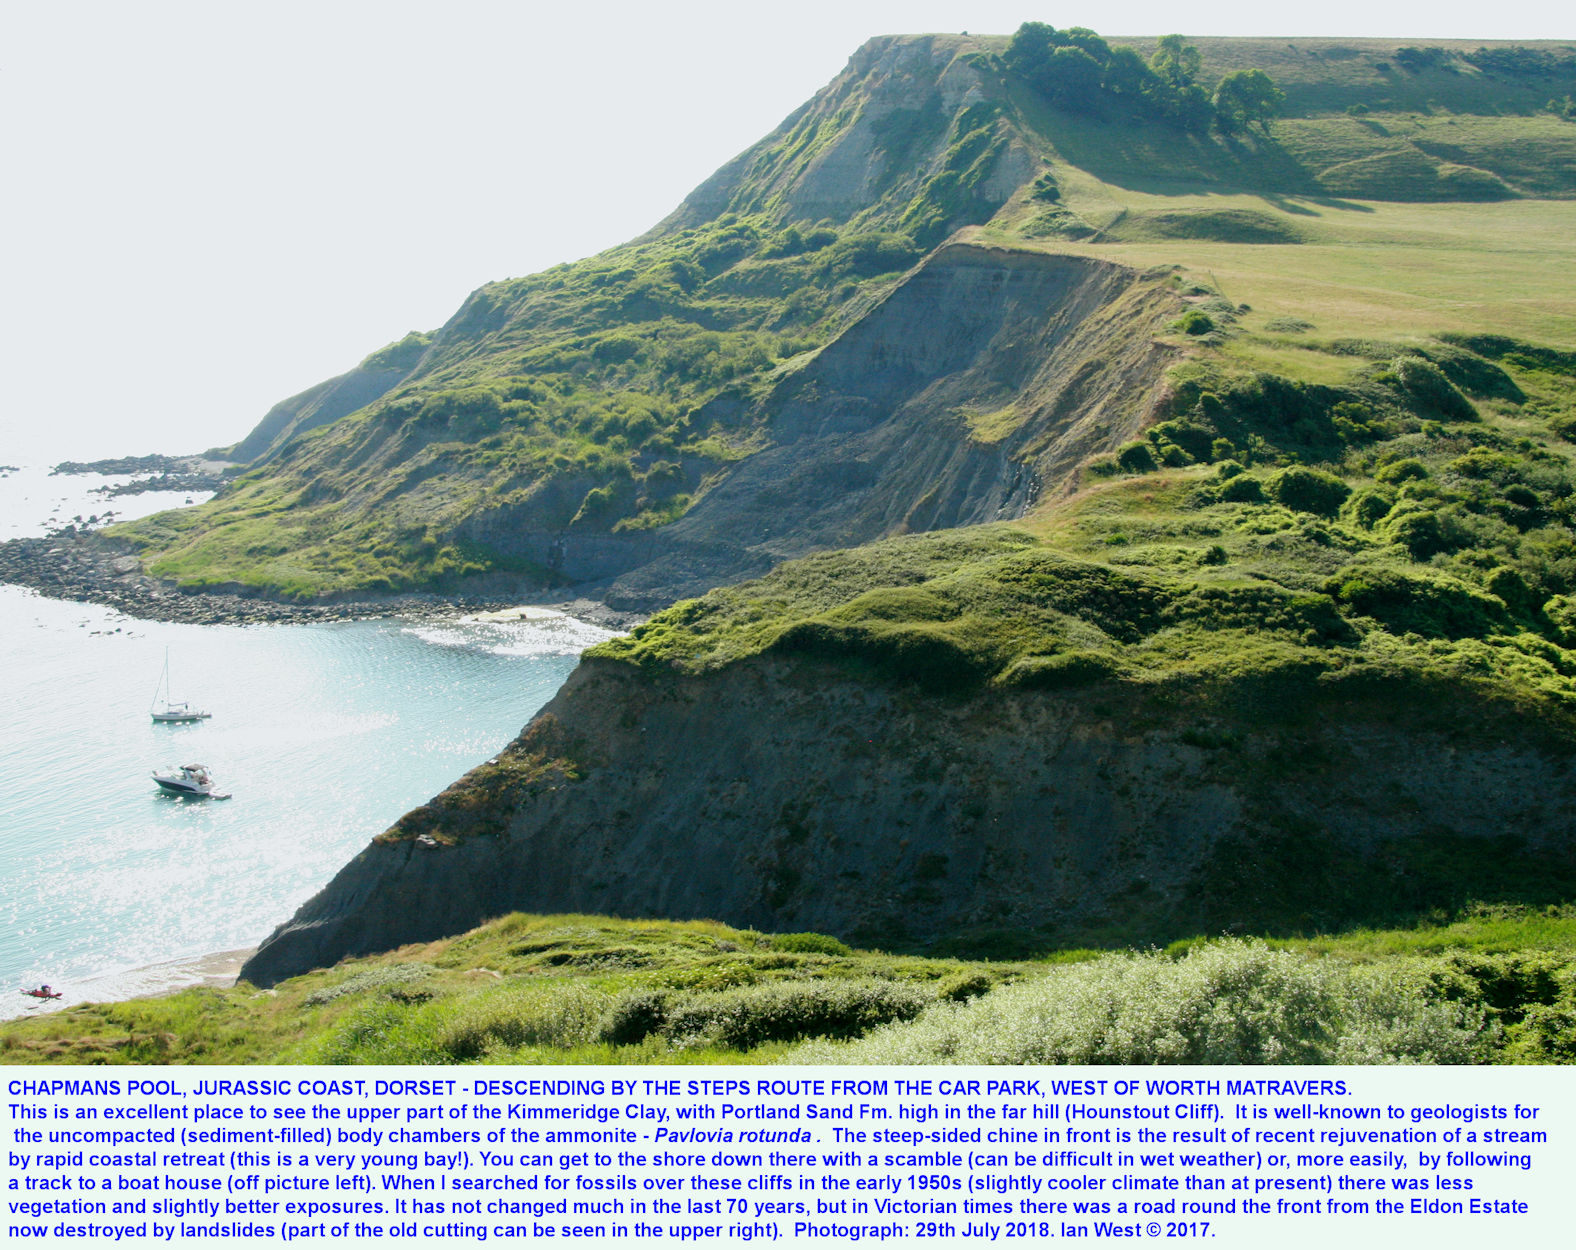 General view of Chapman's Pool, Dorset, and of Hounstout Cliff, when descending by the steps, the steeper route from the car park, 29th July 2018, Ian West